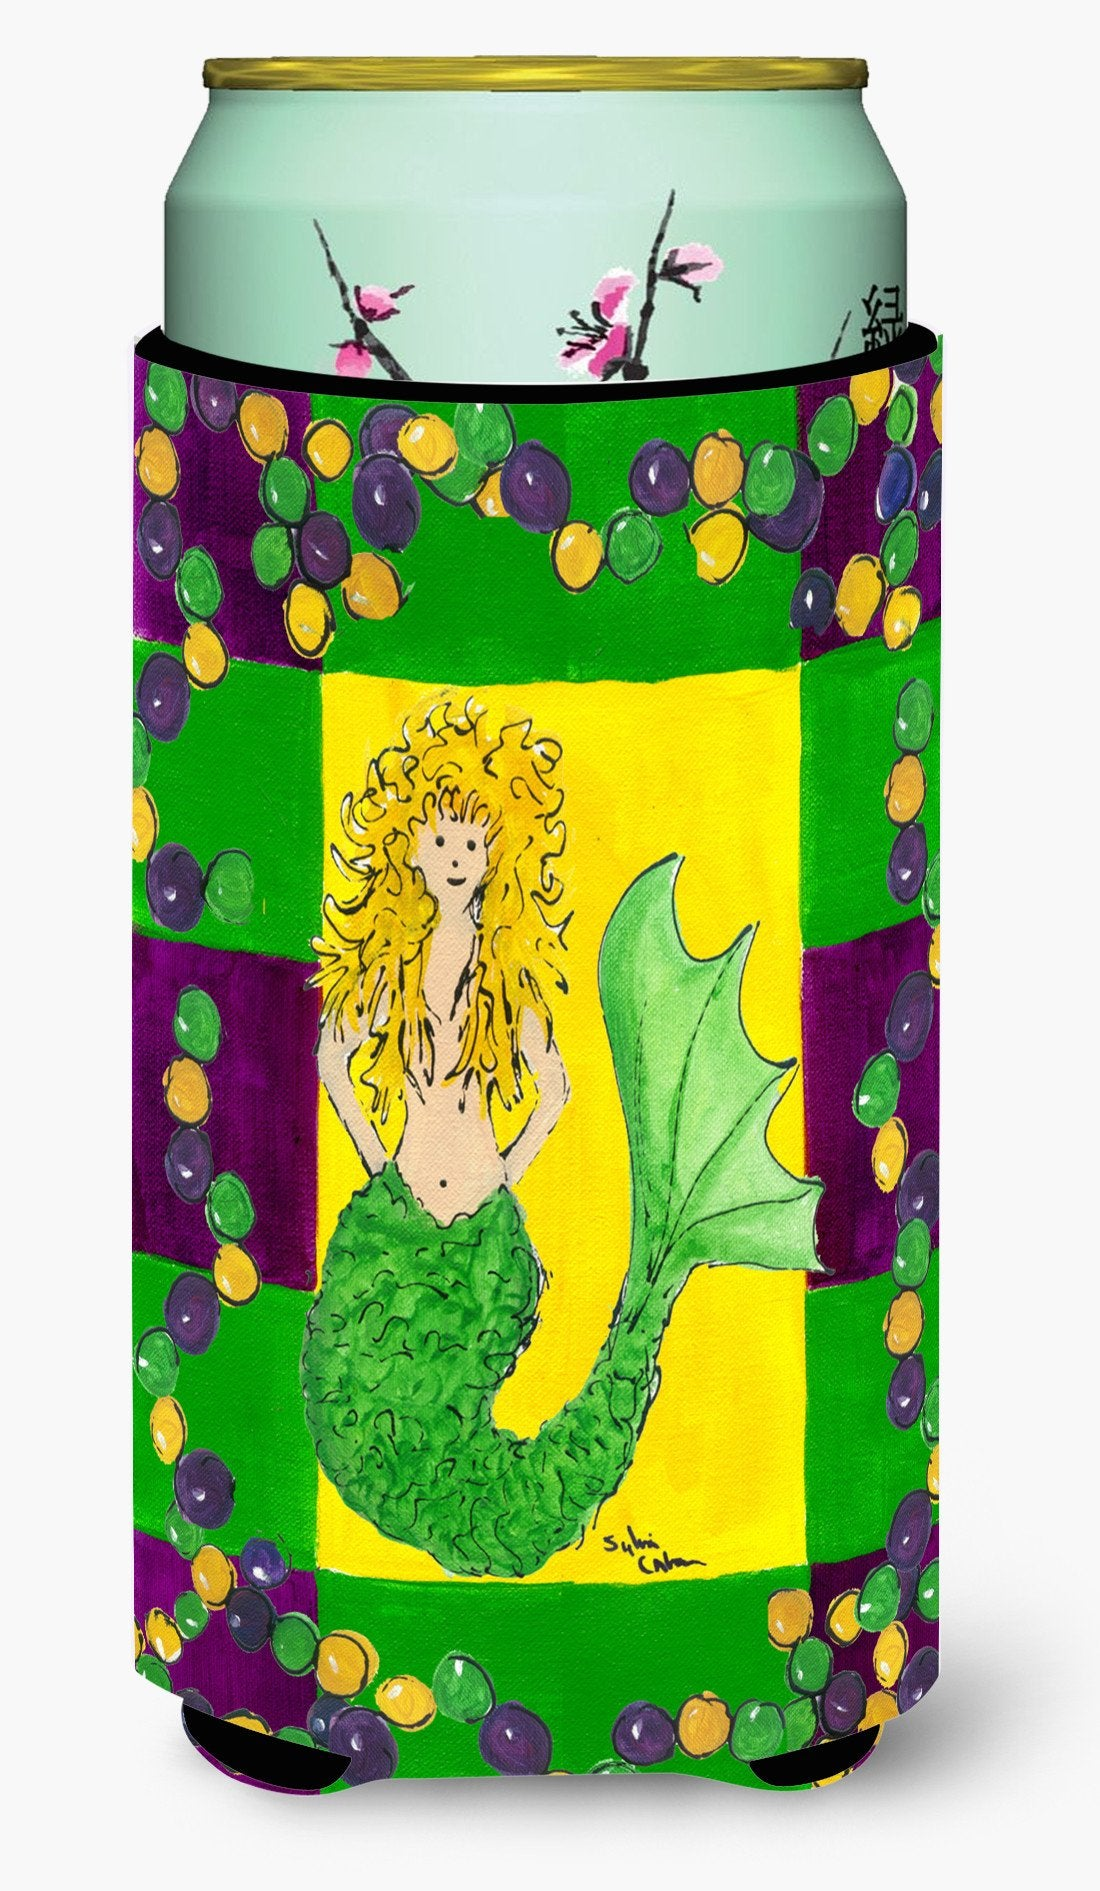 Mardi Gras Mermaid Tall Boy Beverage Insulator Beverage Insulator Hugger by Caroline's Treasures